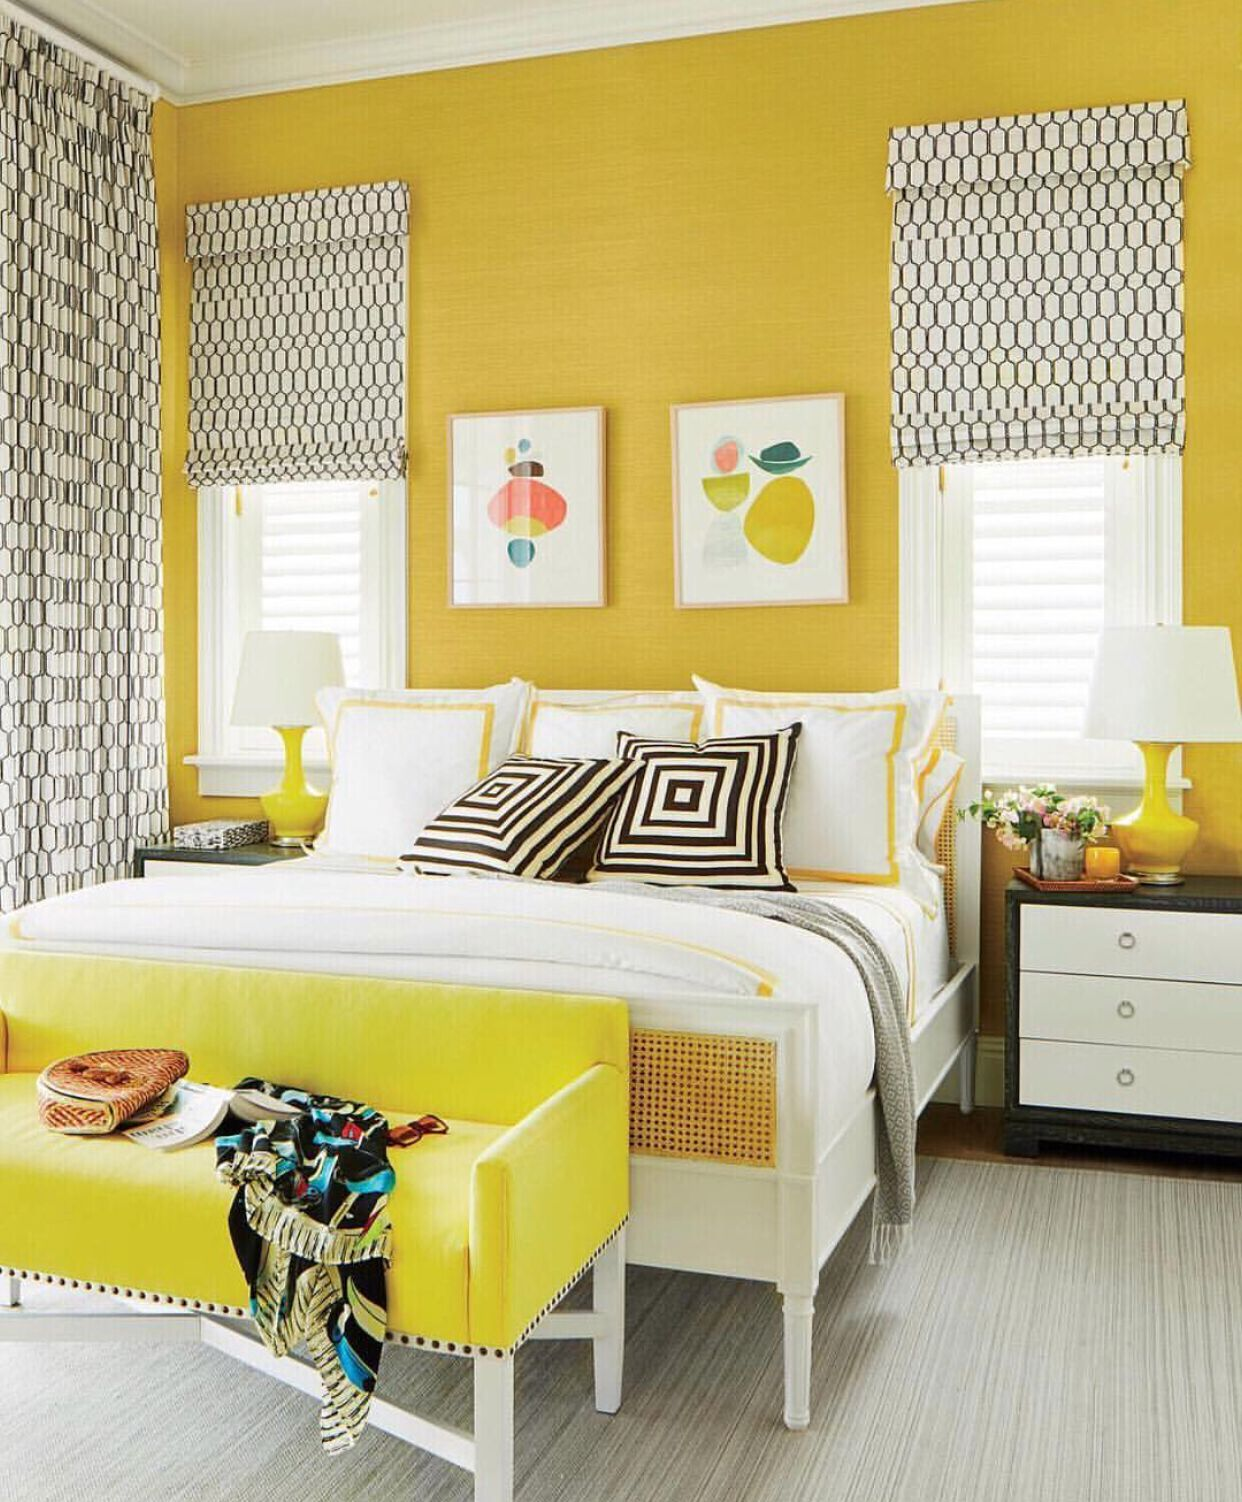 Bright and vibrant pineapple bedroom design featuring bungalow